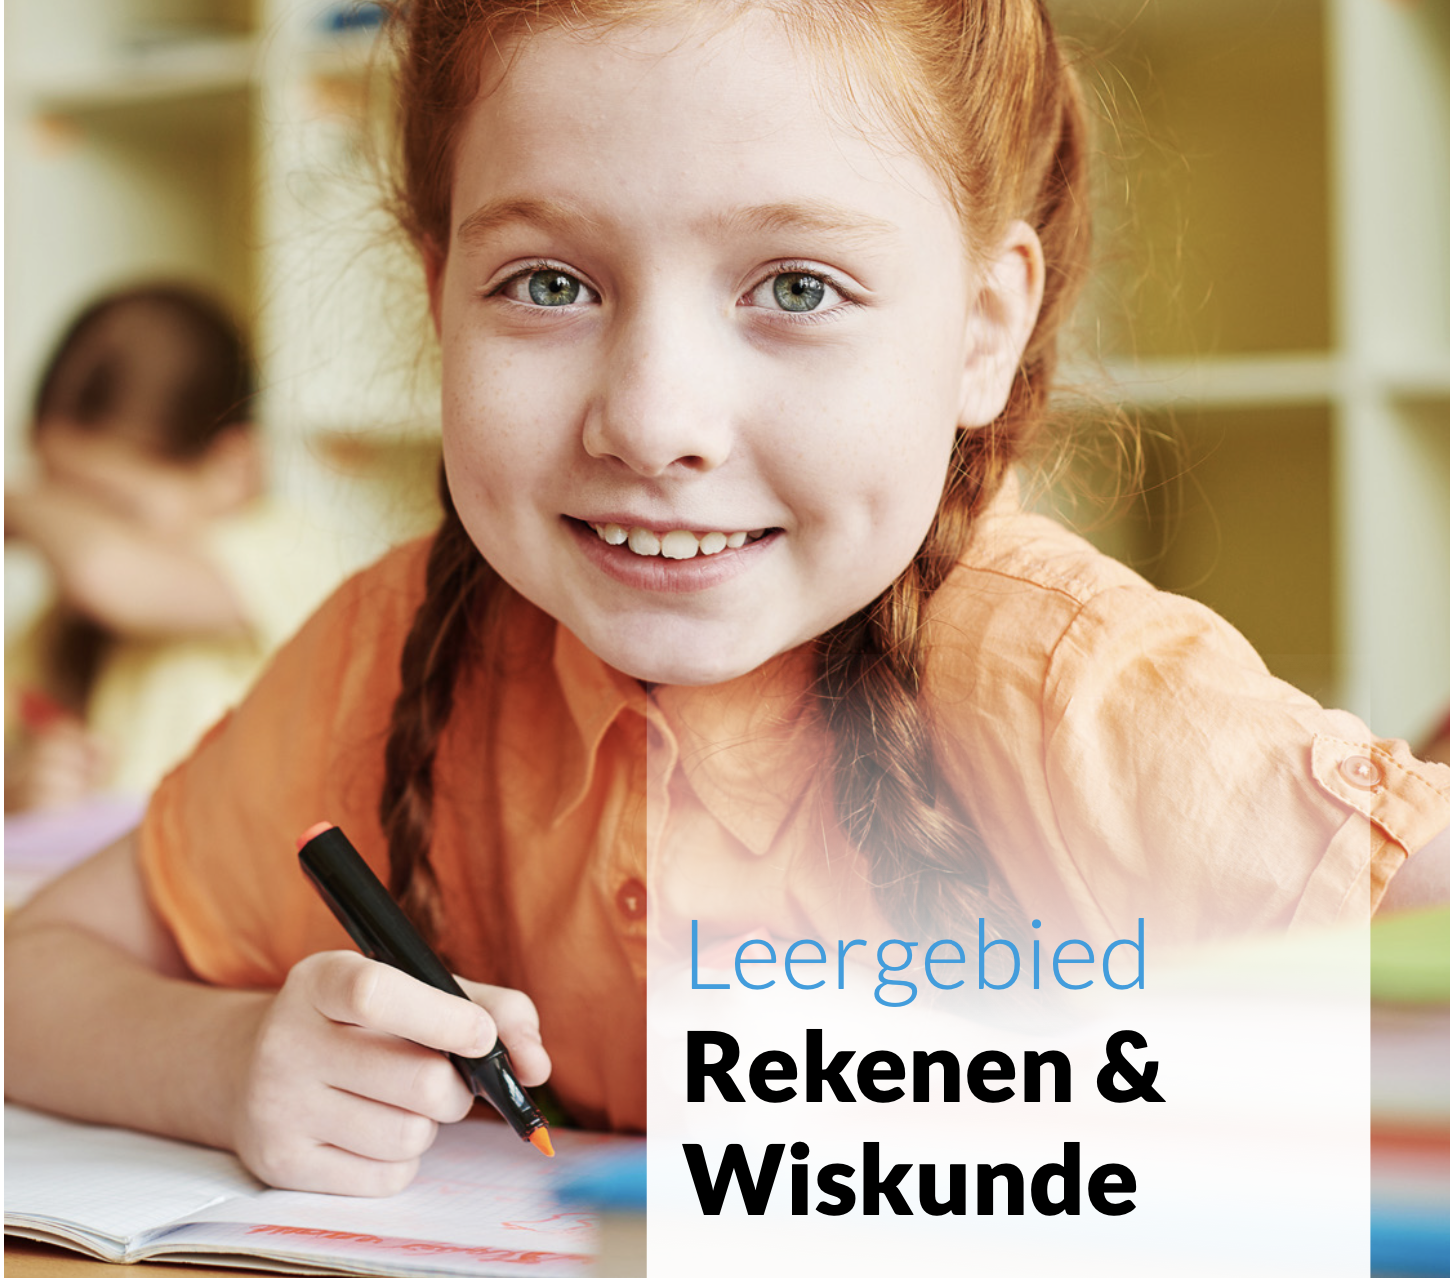 proposition paper curriculum.nu - reactie eindrapport nvorwo